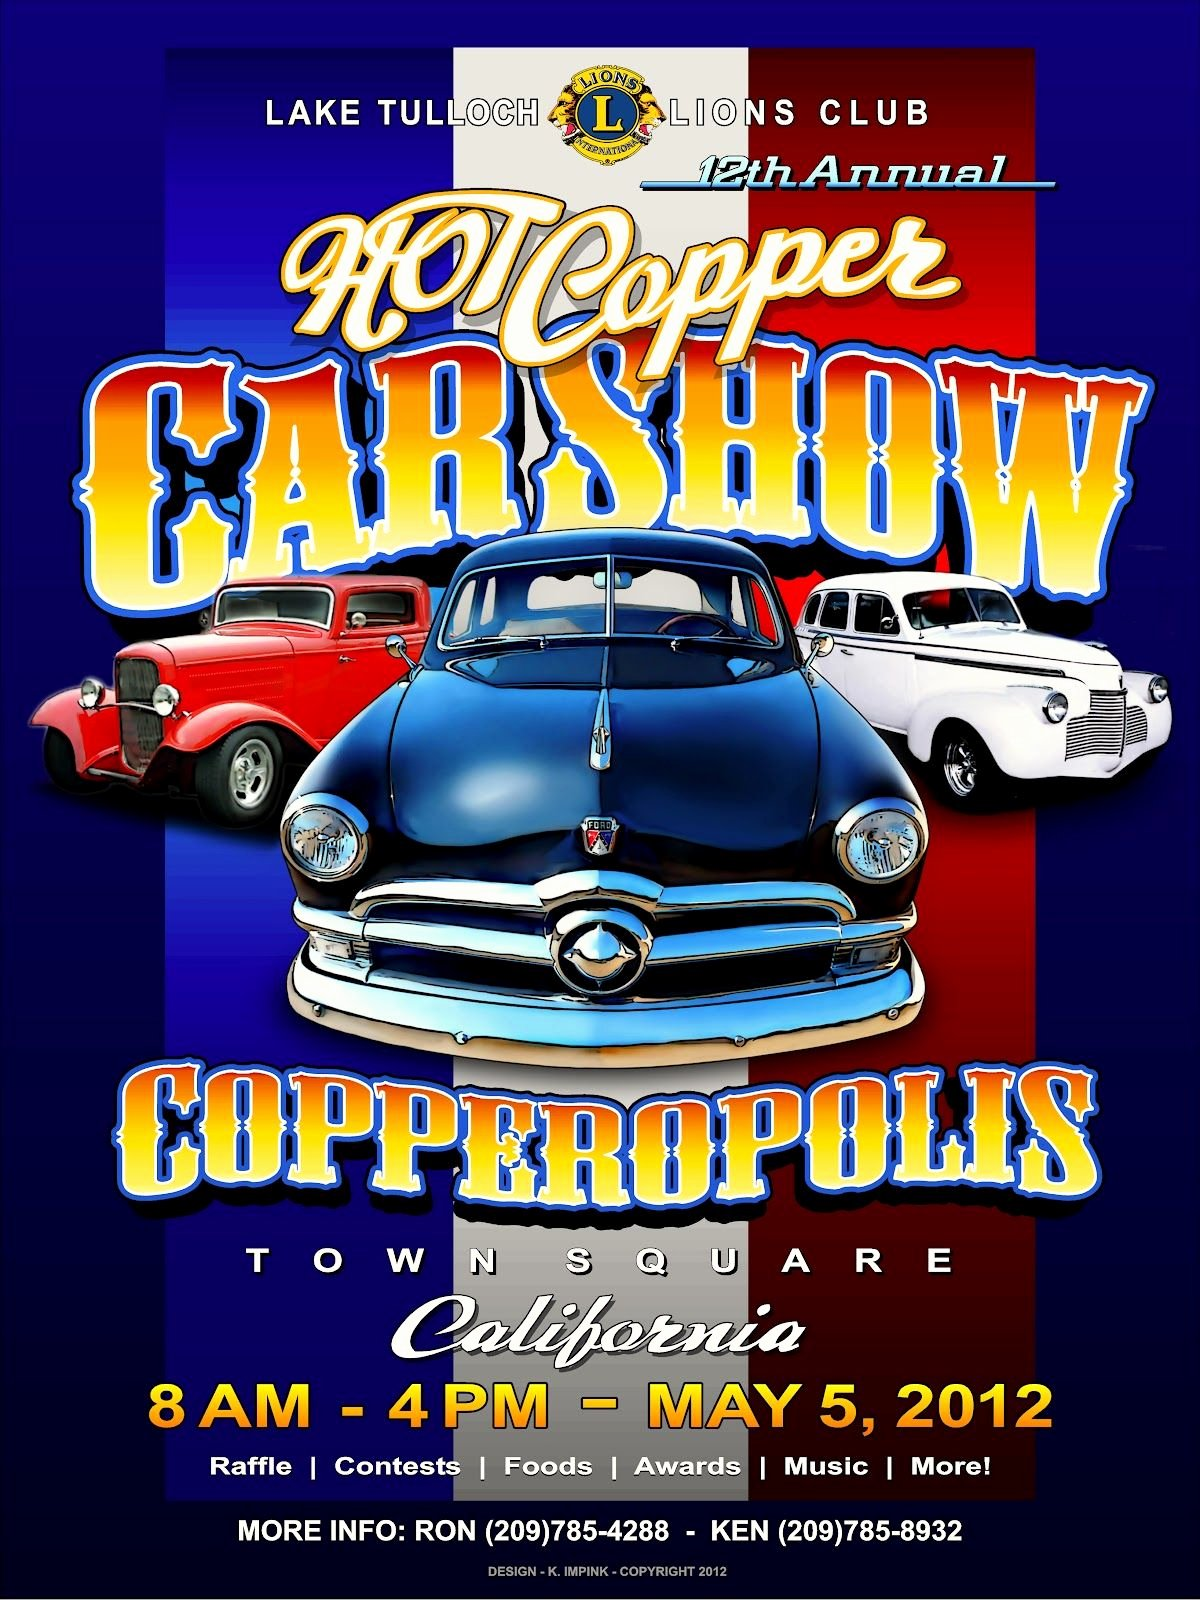 Car Show Hot Copper Copperopolis California May 5